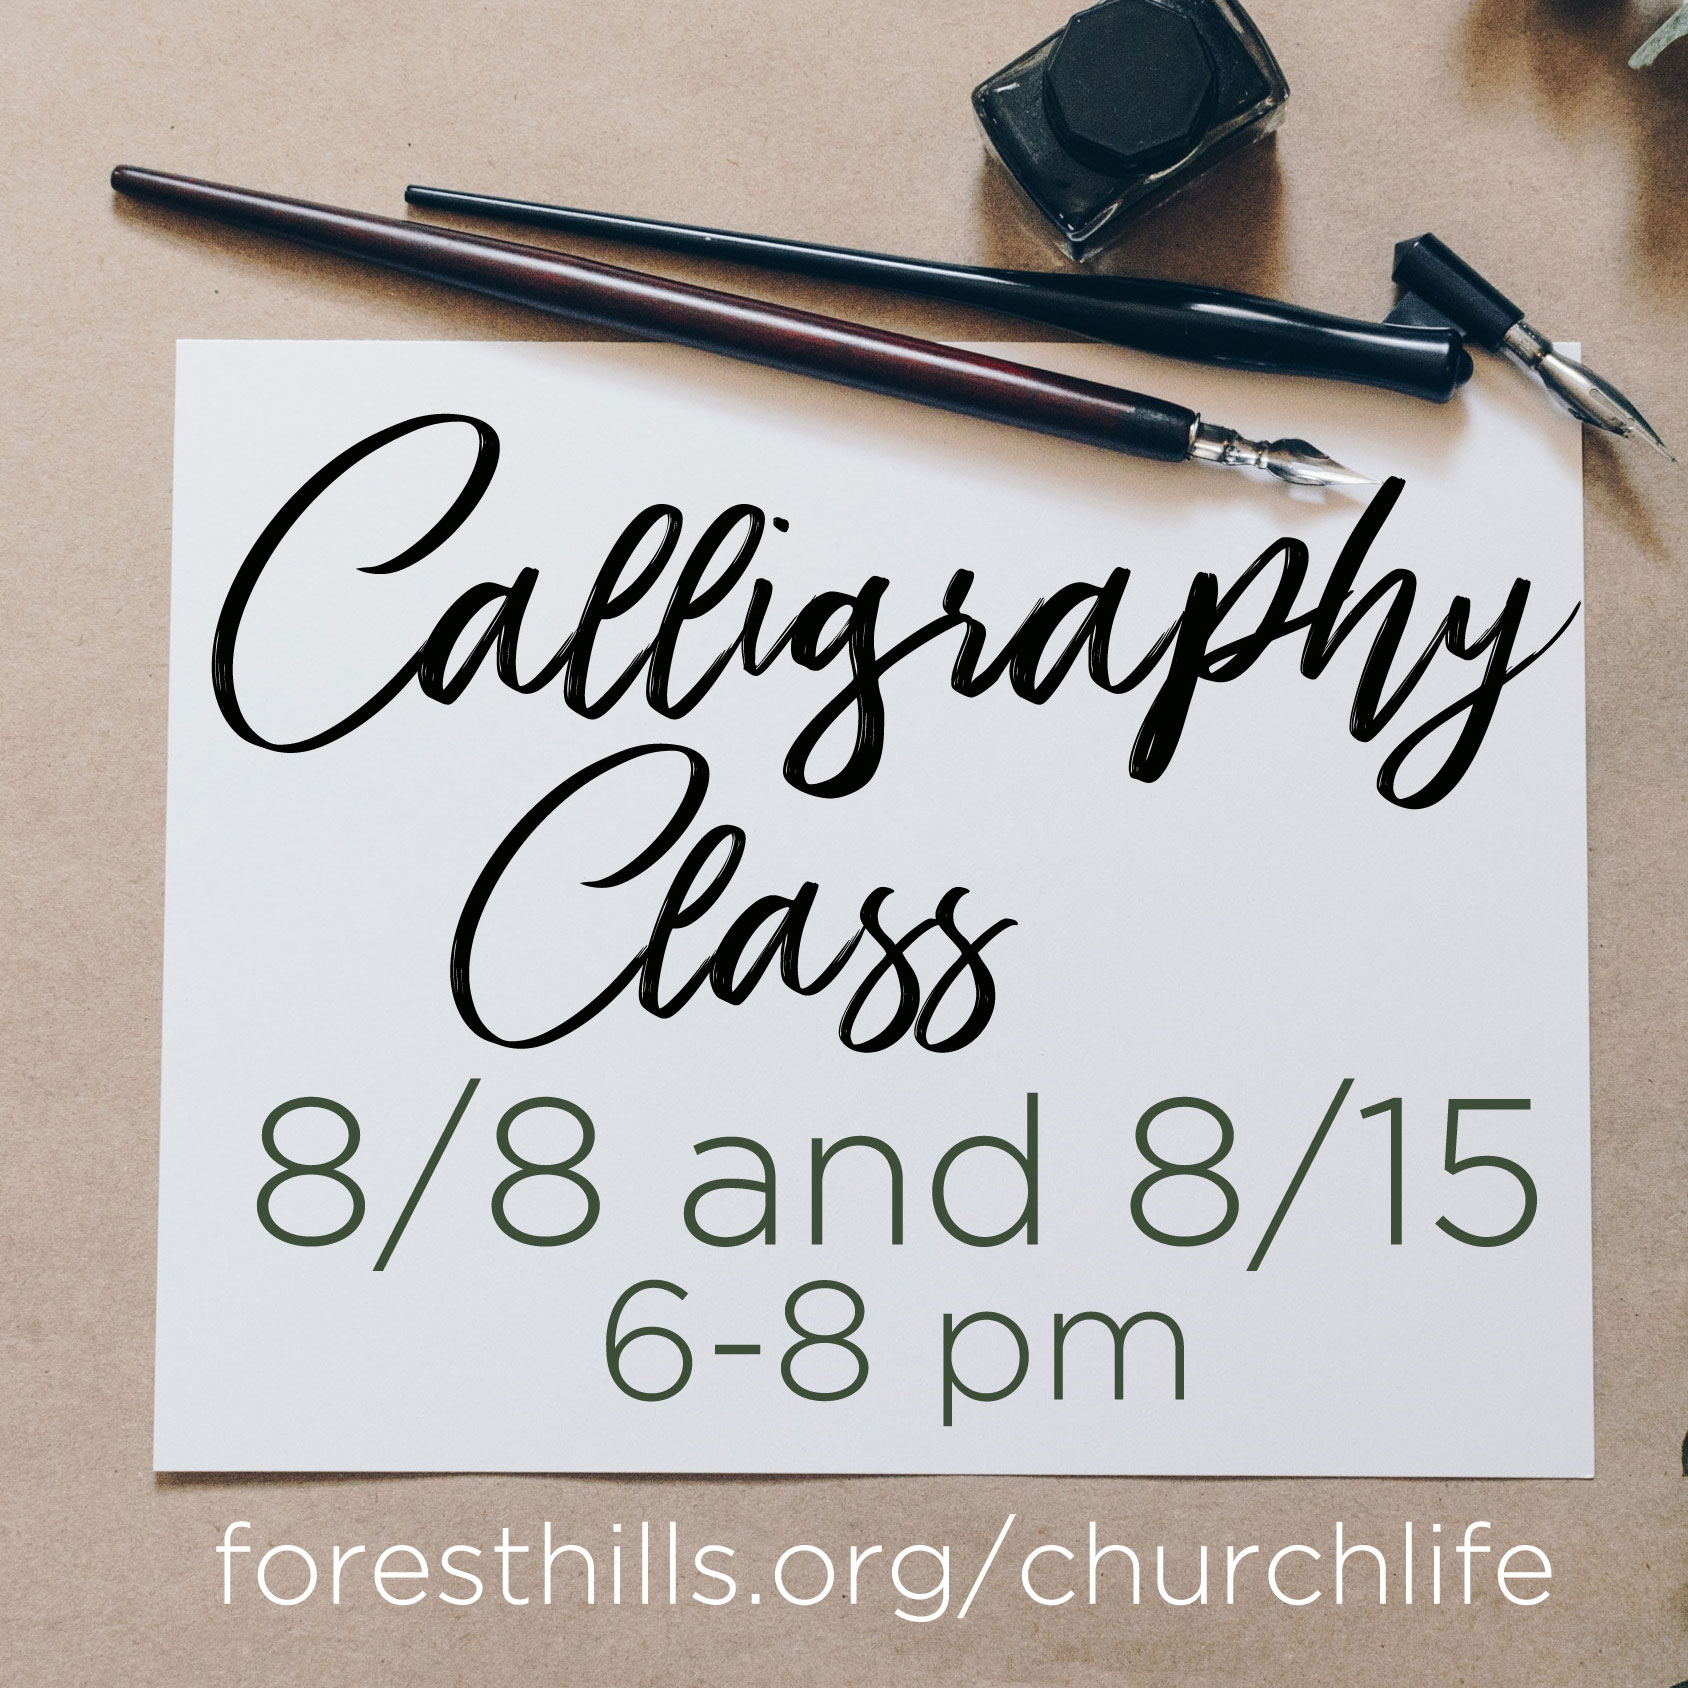 The Arts Ministry is sponsoring a two-session Calligraphy Class led by Harriet Davis on Wed, 8/8 and 8/15 from 6:00 - 8:00 pm in Shepherd's Studio. There is no charge and supplies are provided. Seating is limited; if you are interested in joining, register at  forestghills.org/churchlife .